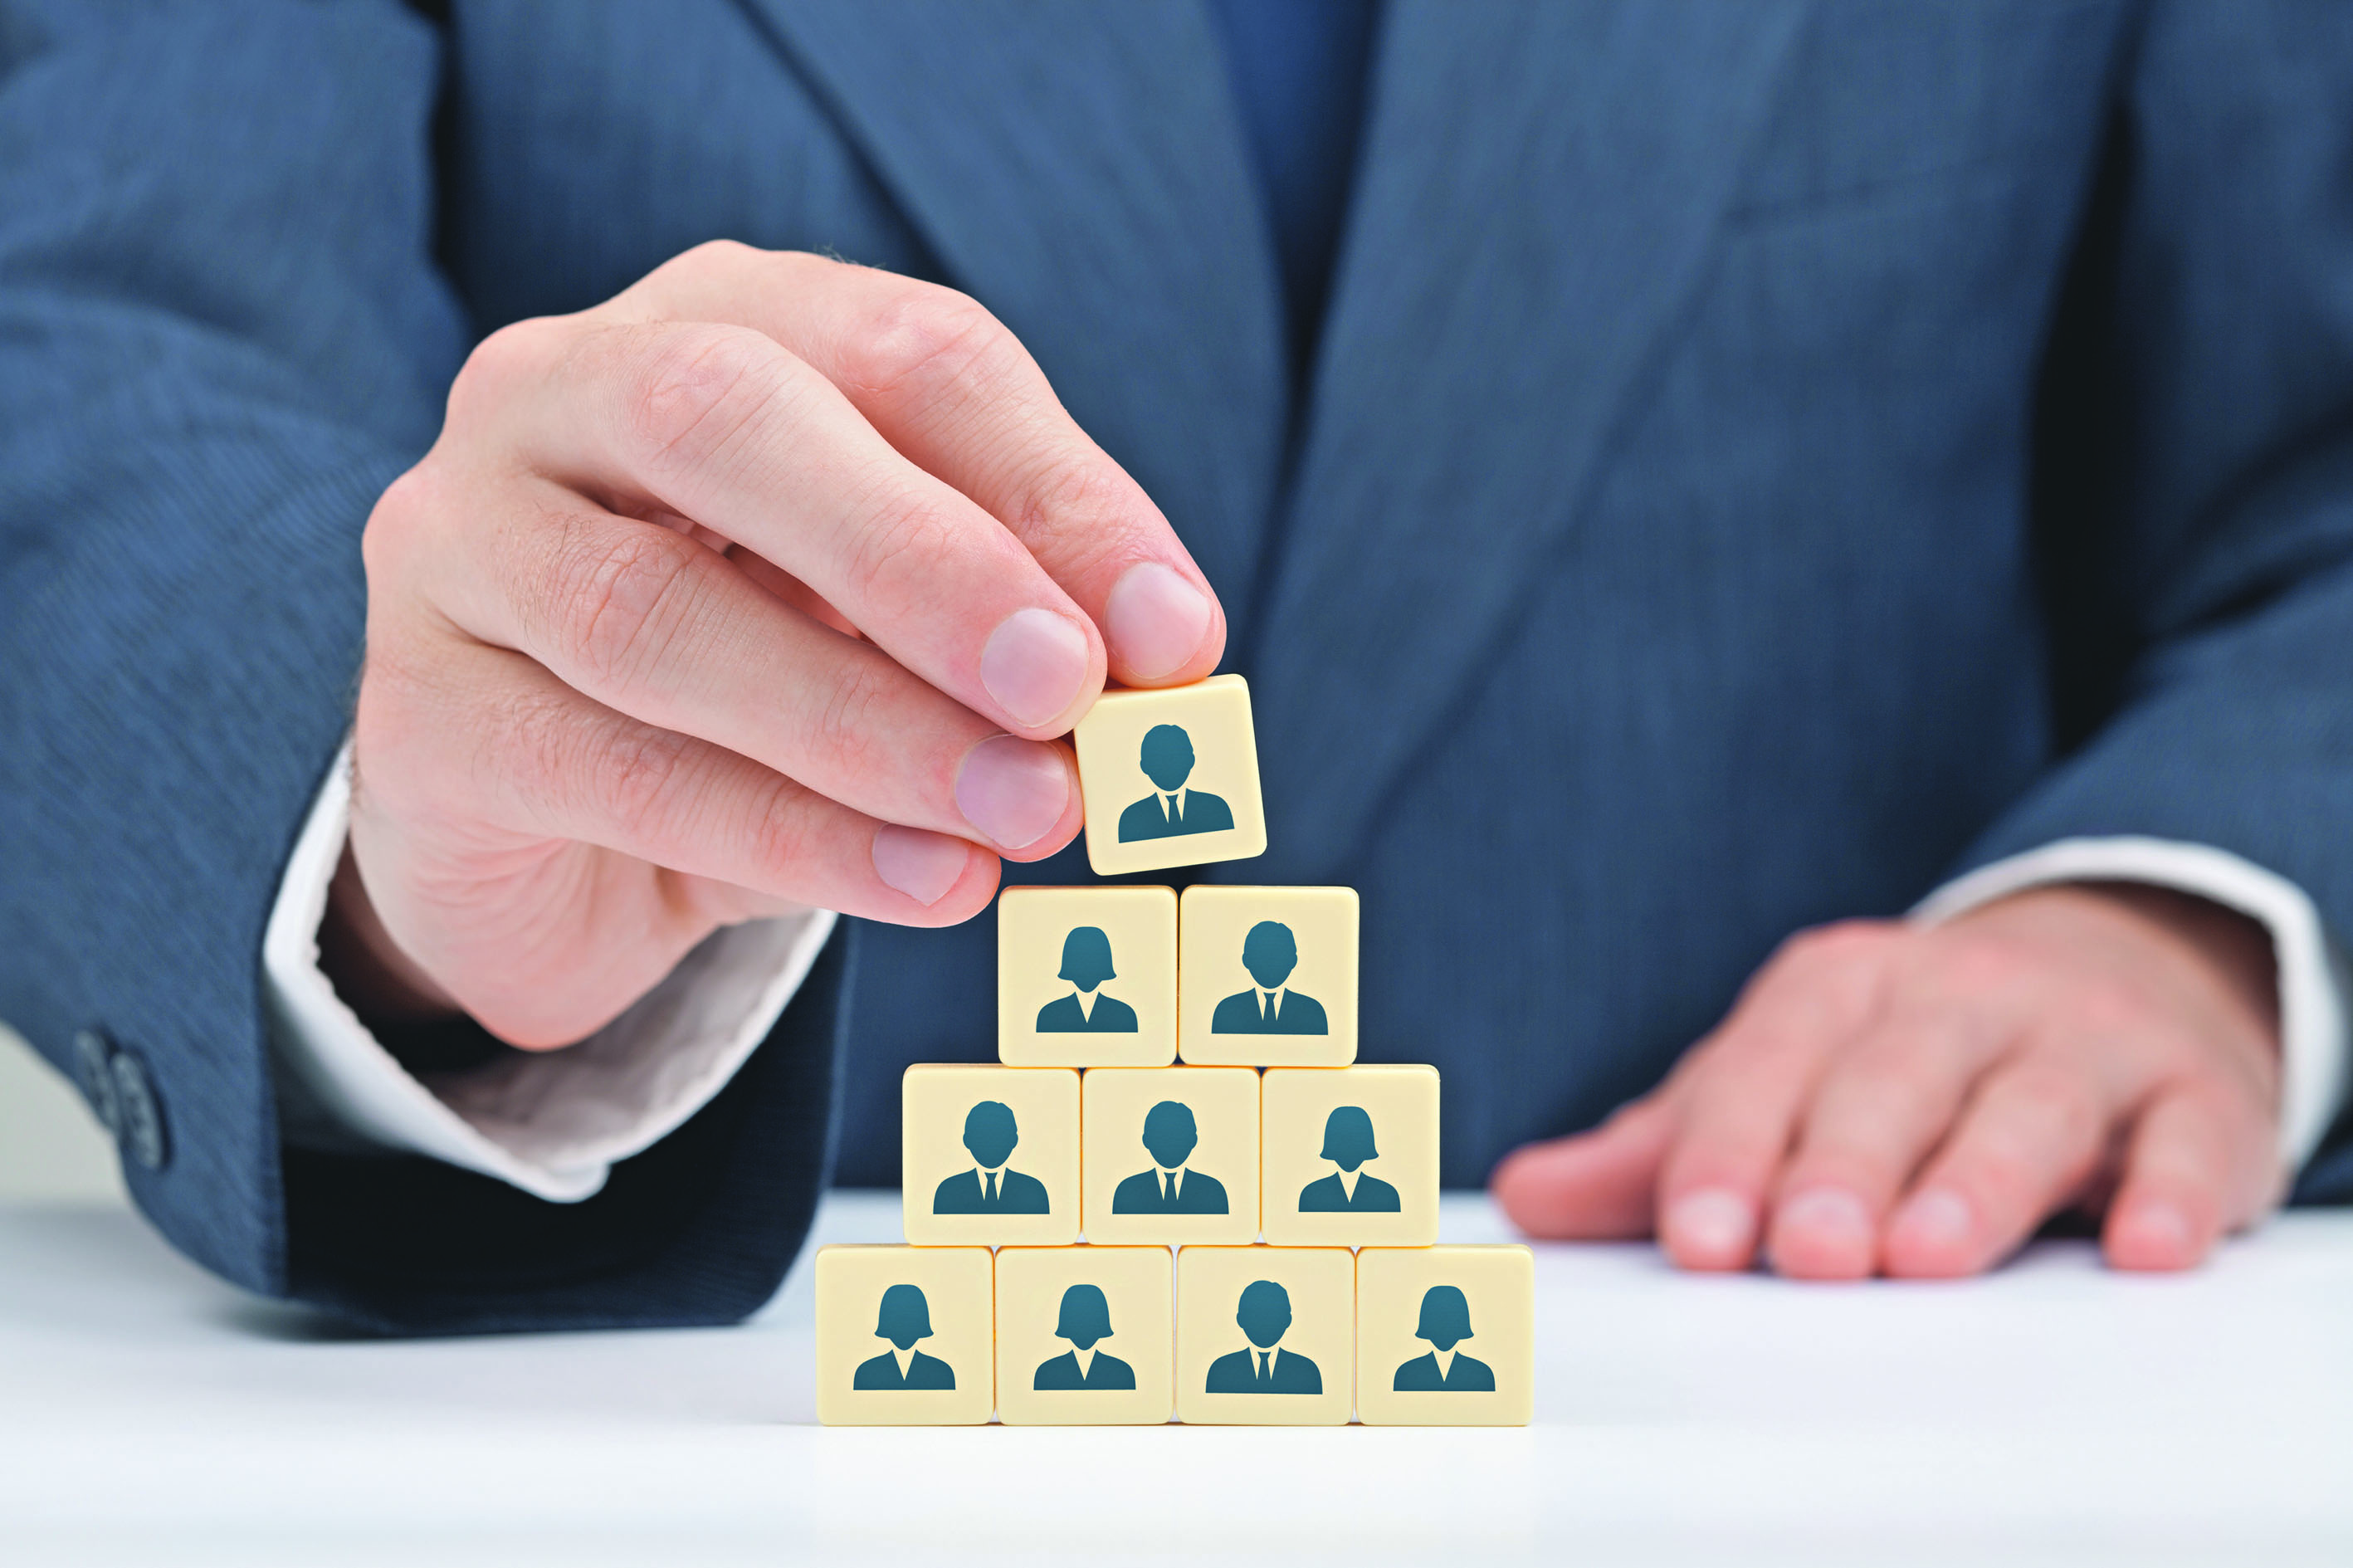 http://www.dreamstime.com/royalty-free-stock-photo-human-resources-ceo-corporate-hierarchy-concept-recruiter-complete-team-one-leader-person-represented-icon-image31043665